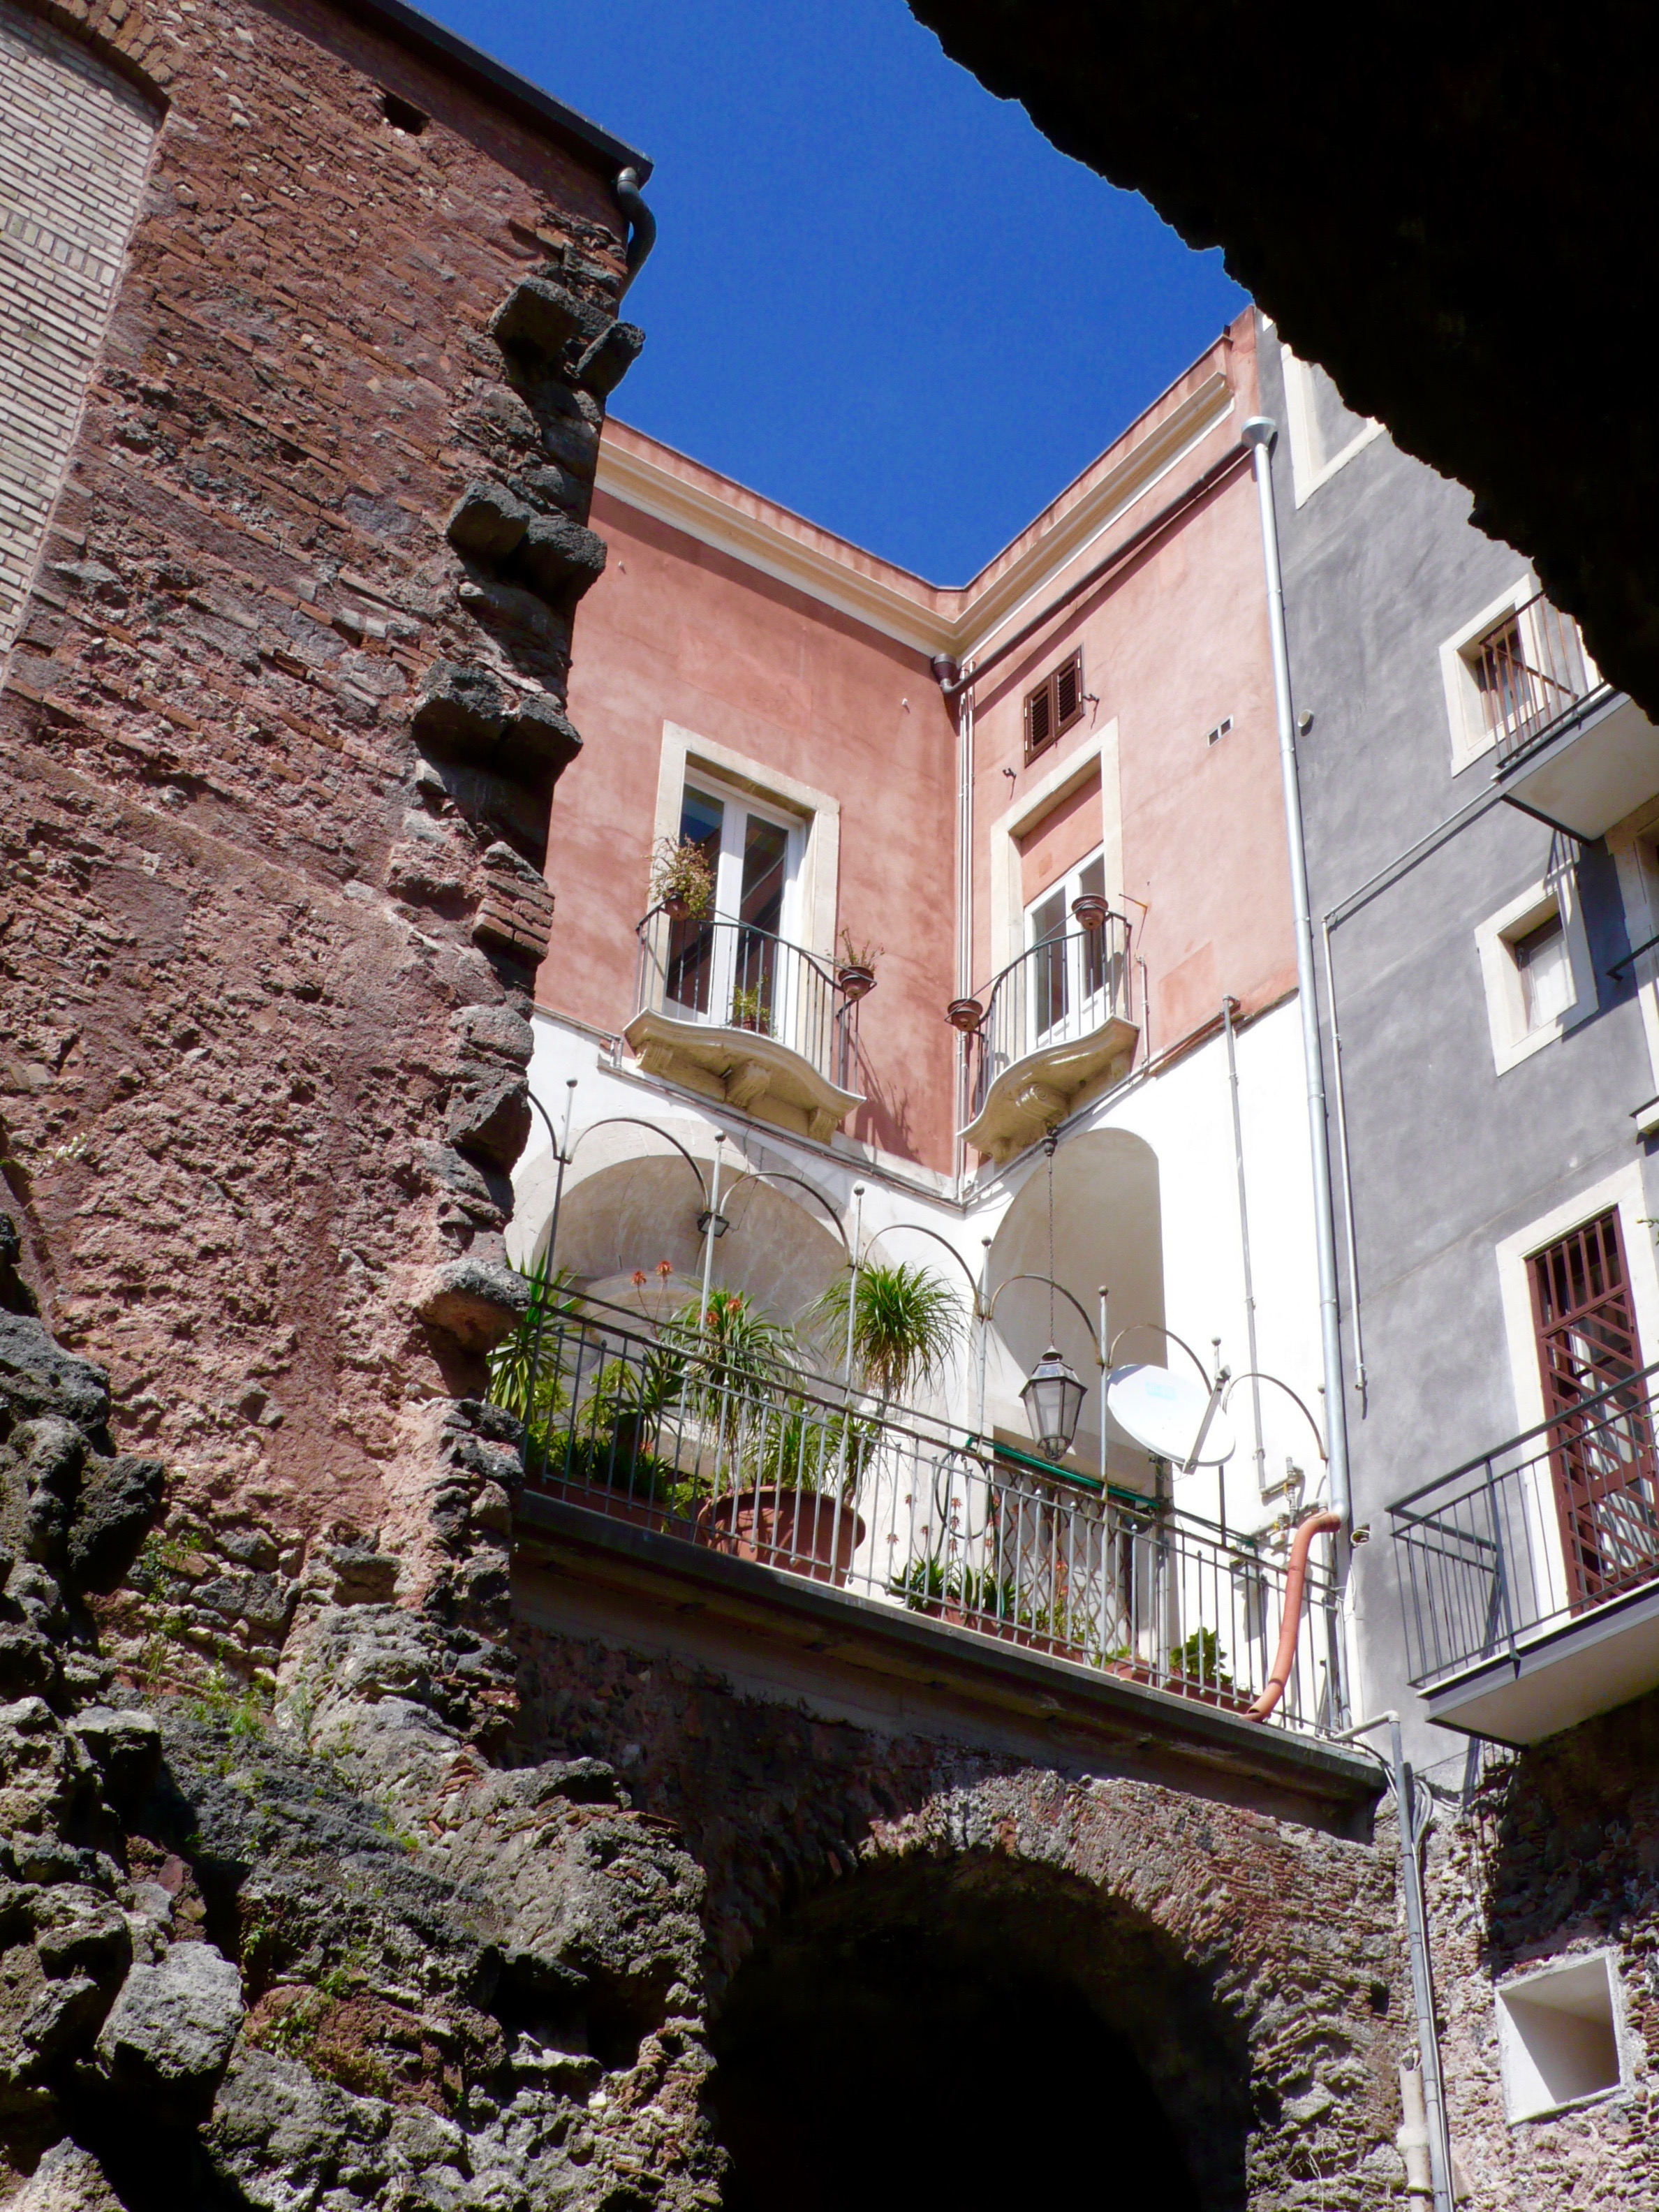 Homes built right over the Roman Amphitheater Ruins in the center of the city